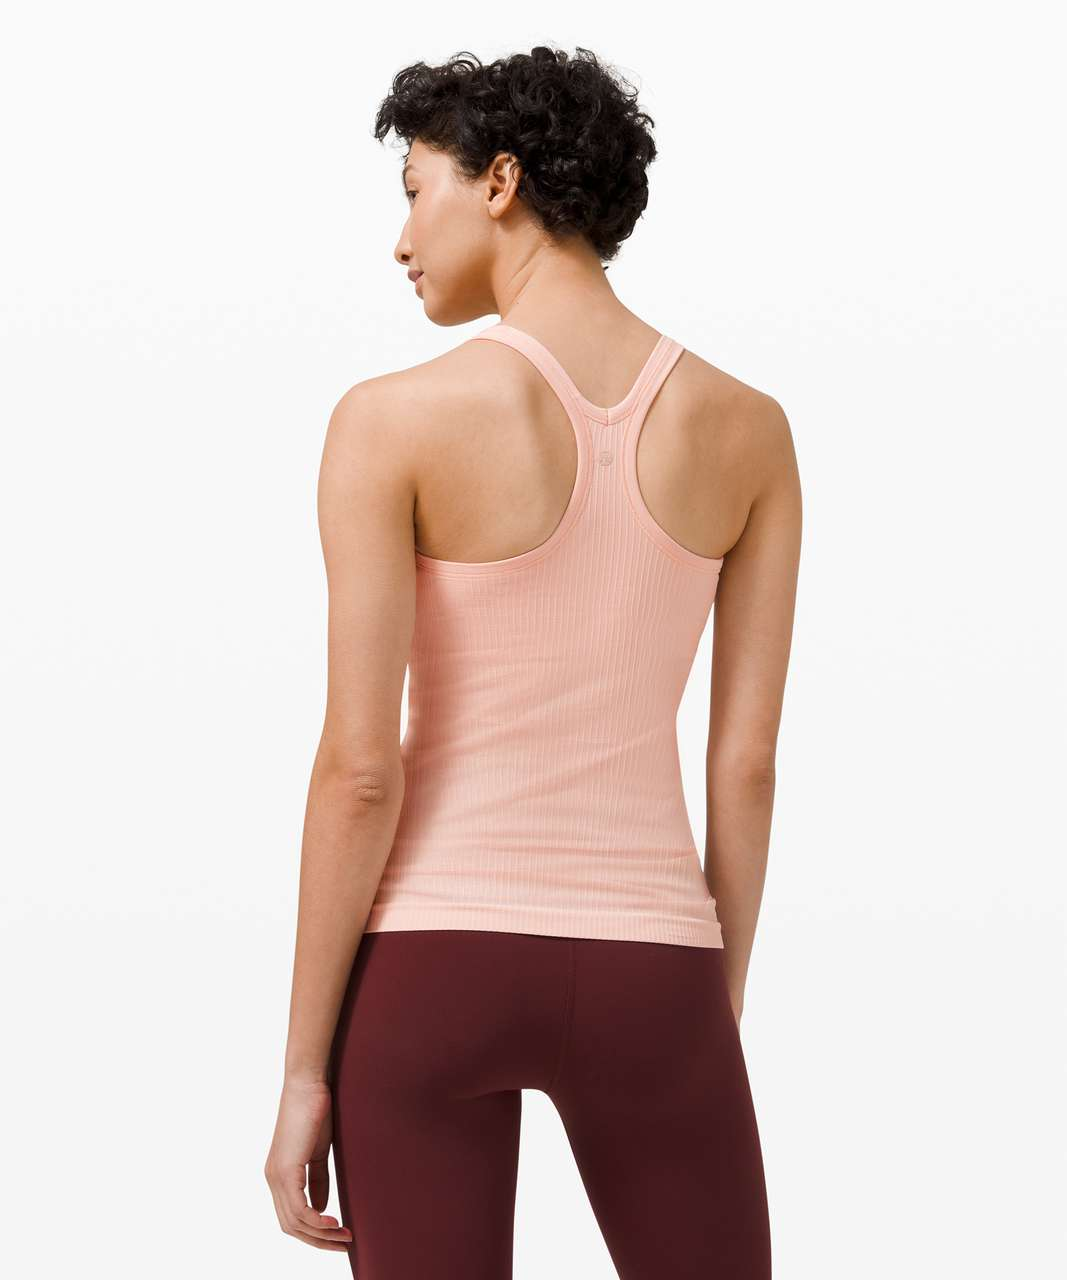 Lululemon Ebb To Street Tank *Light Support For B/C Cup - Pink Mist